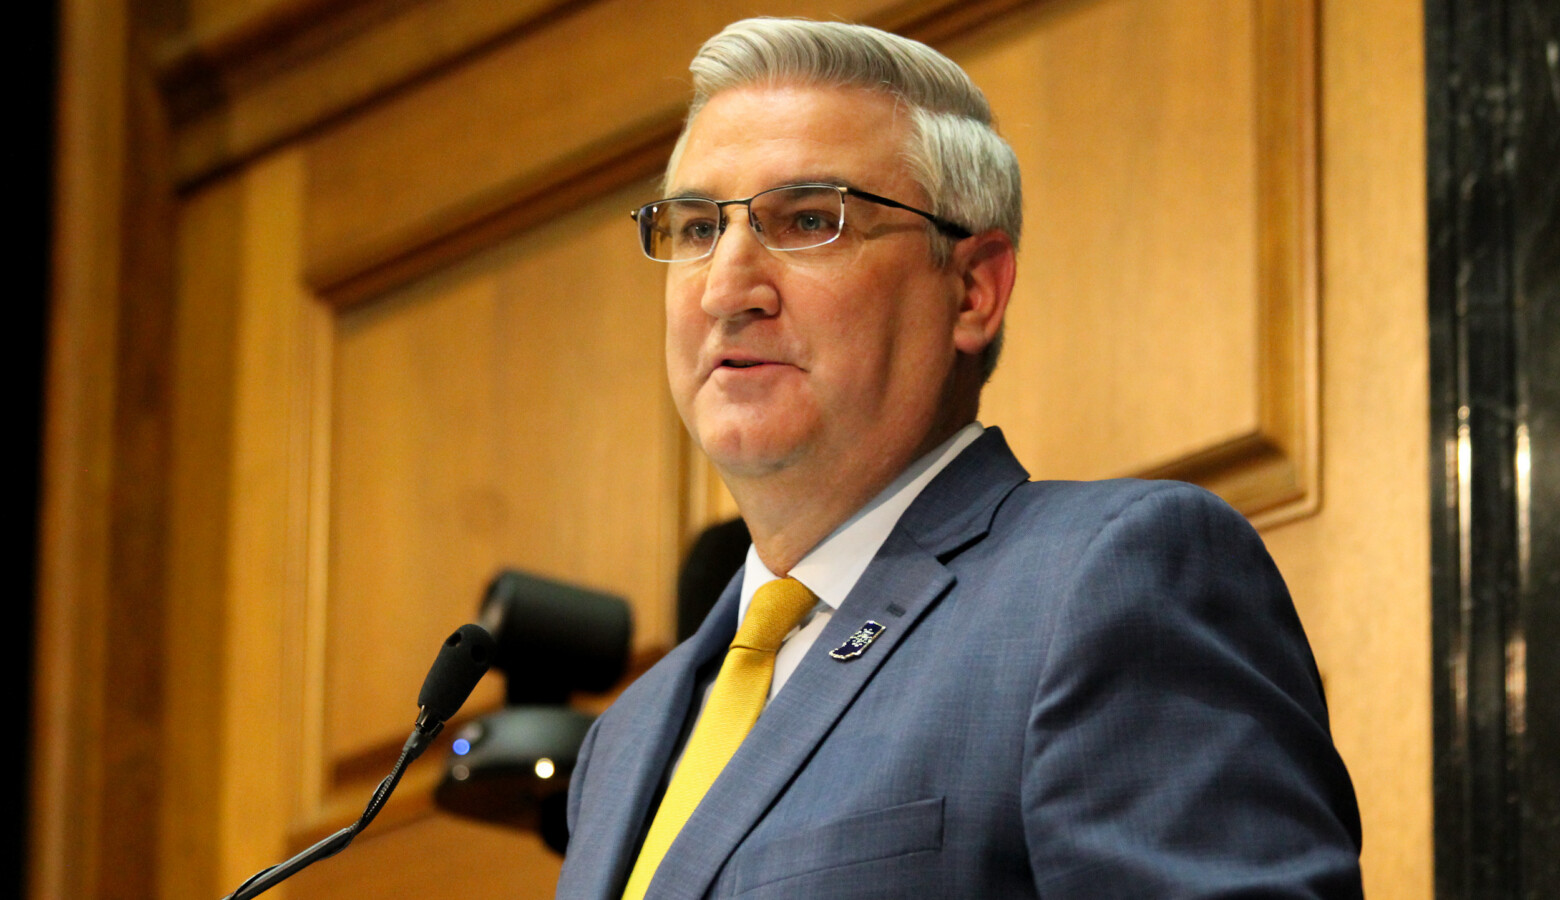 Gov. Eric Holcomb vehemently disagreed with critics who argue his first term lacked bold action. (Lauren Chapman/IPB News)